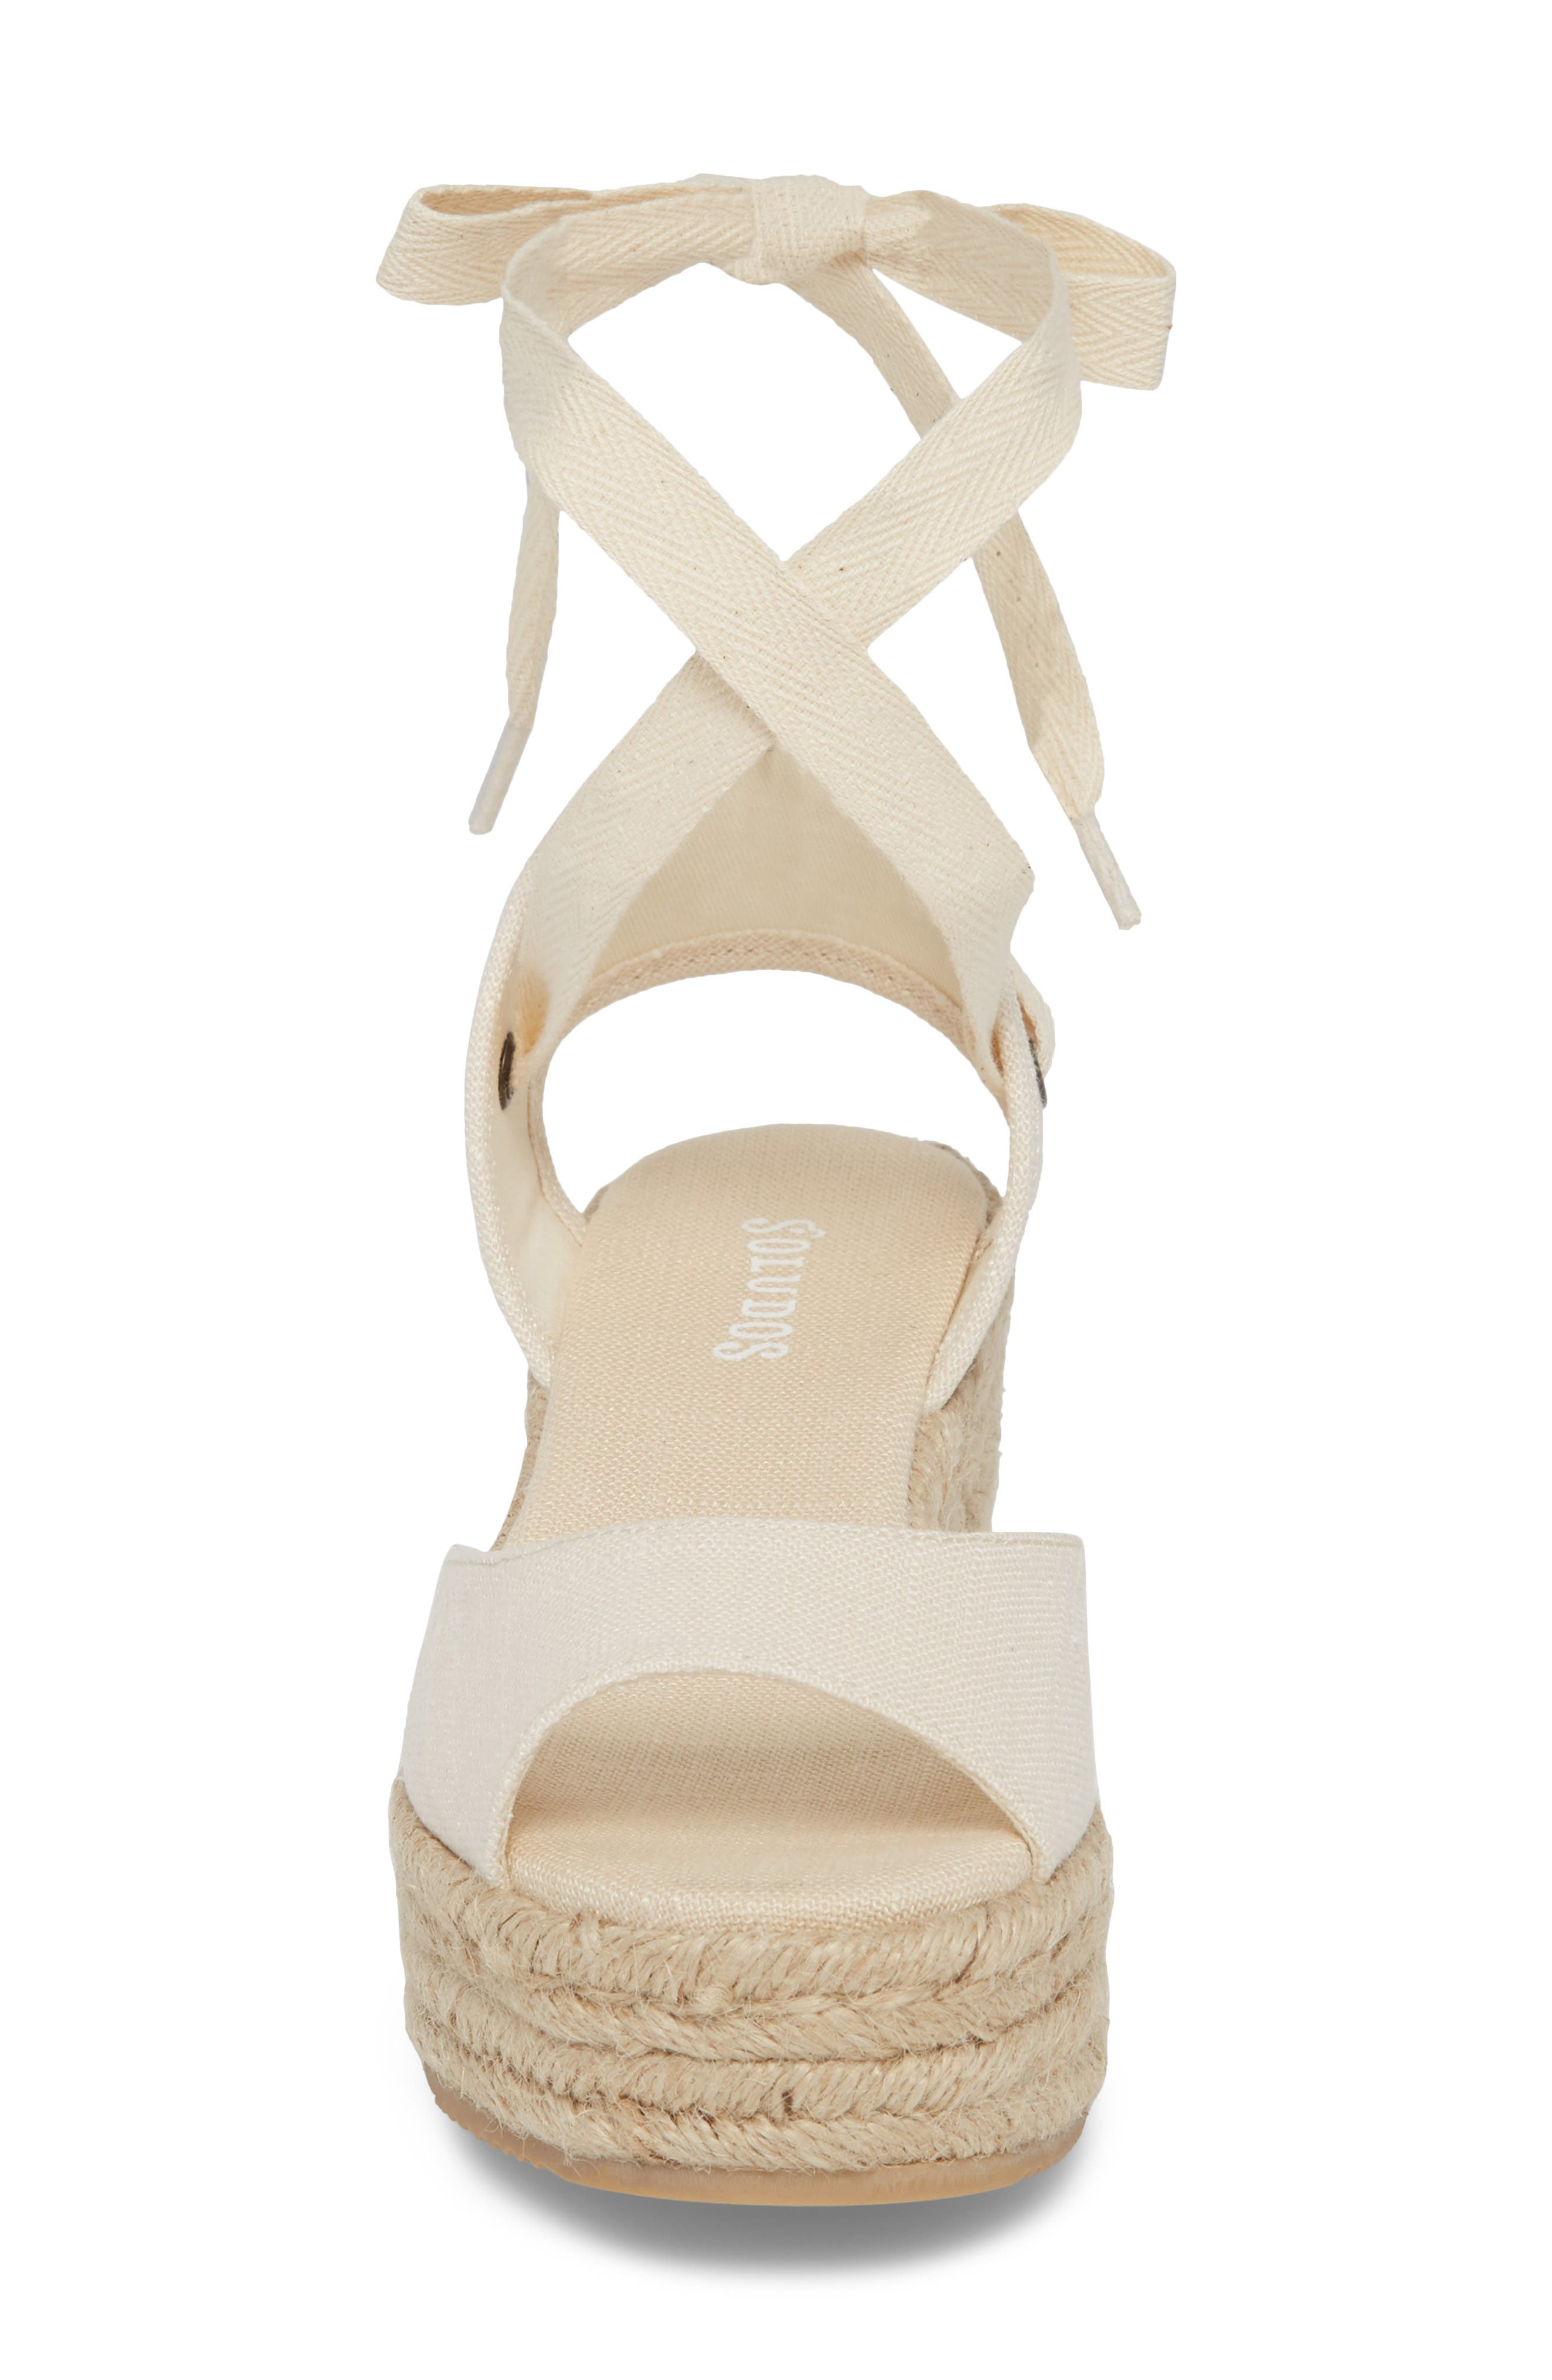 SOLUDOS, Espadrille Platform Sandal, Alternate thumbnail 4, color, BLUSH FABRIC